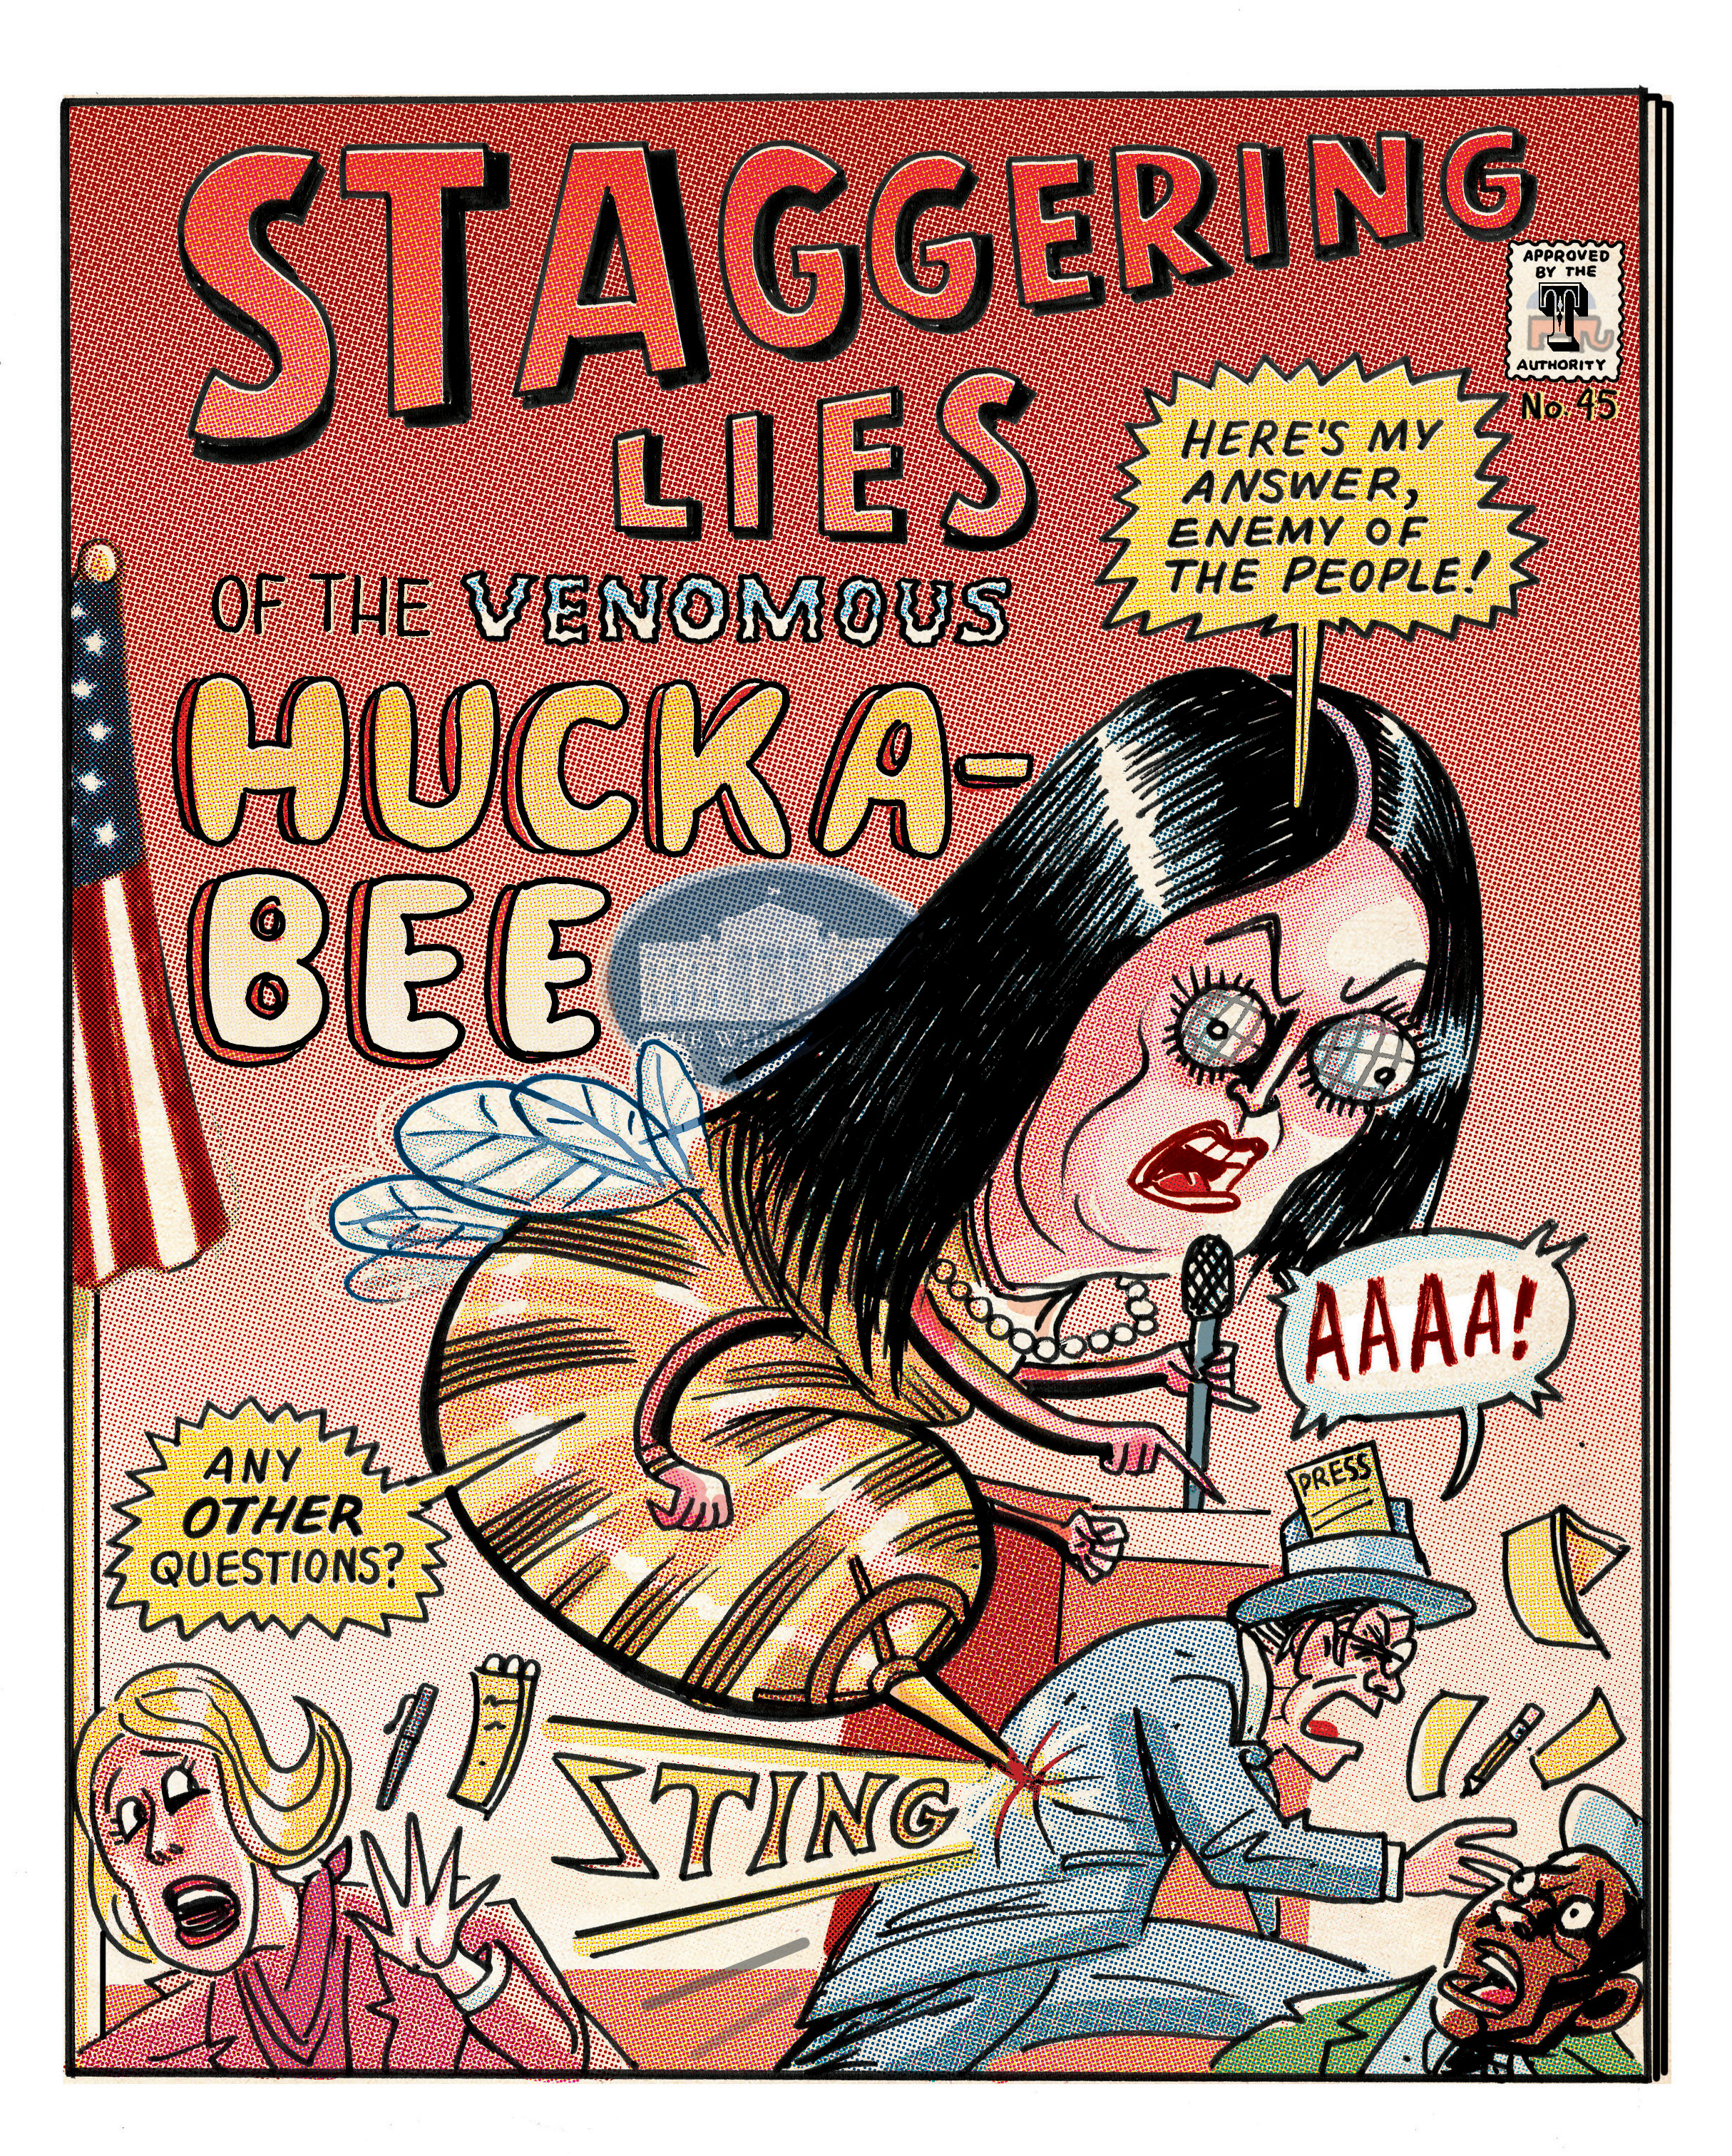 Hucka Bee final color.jpg